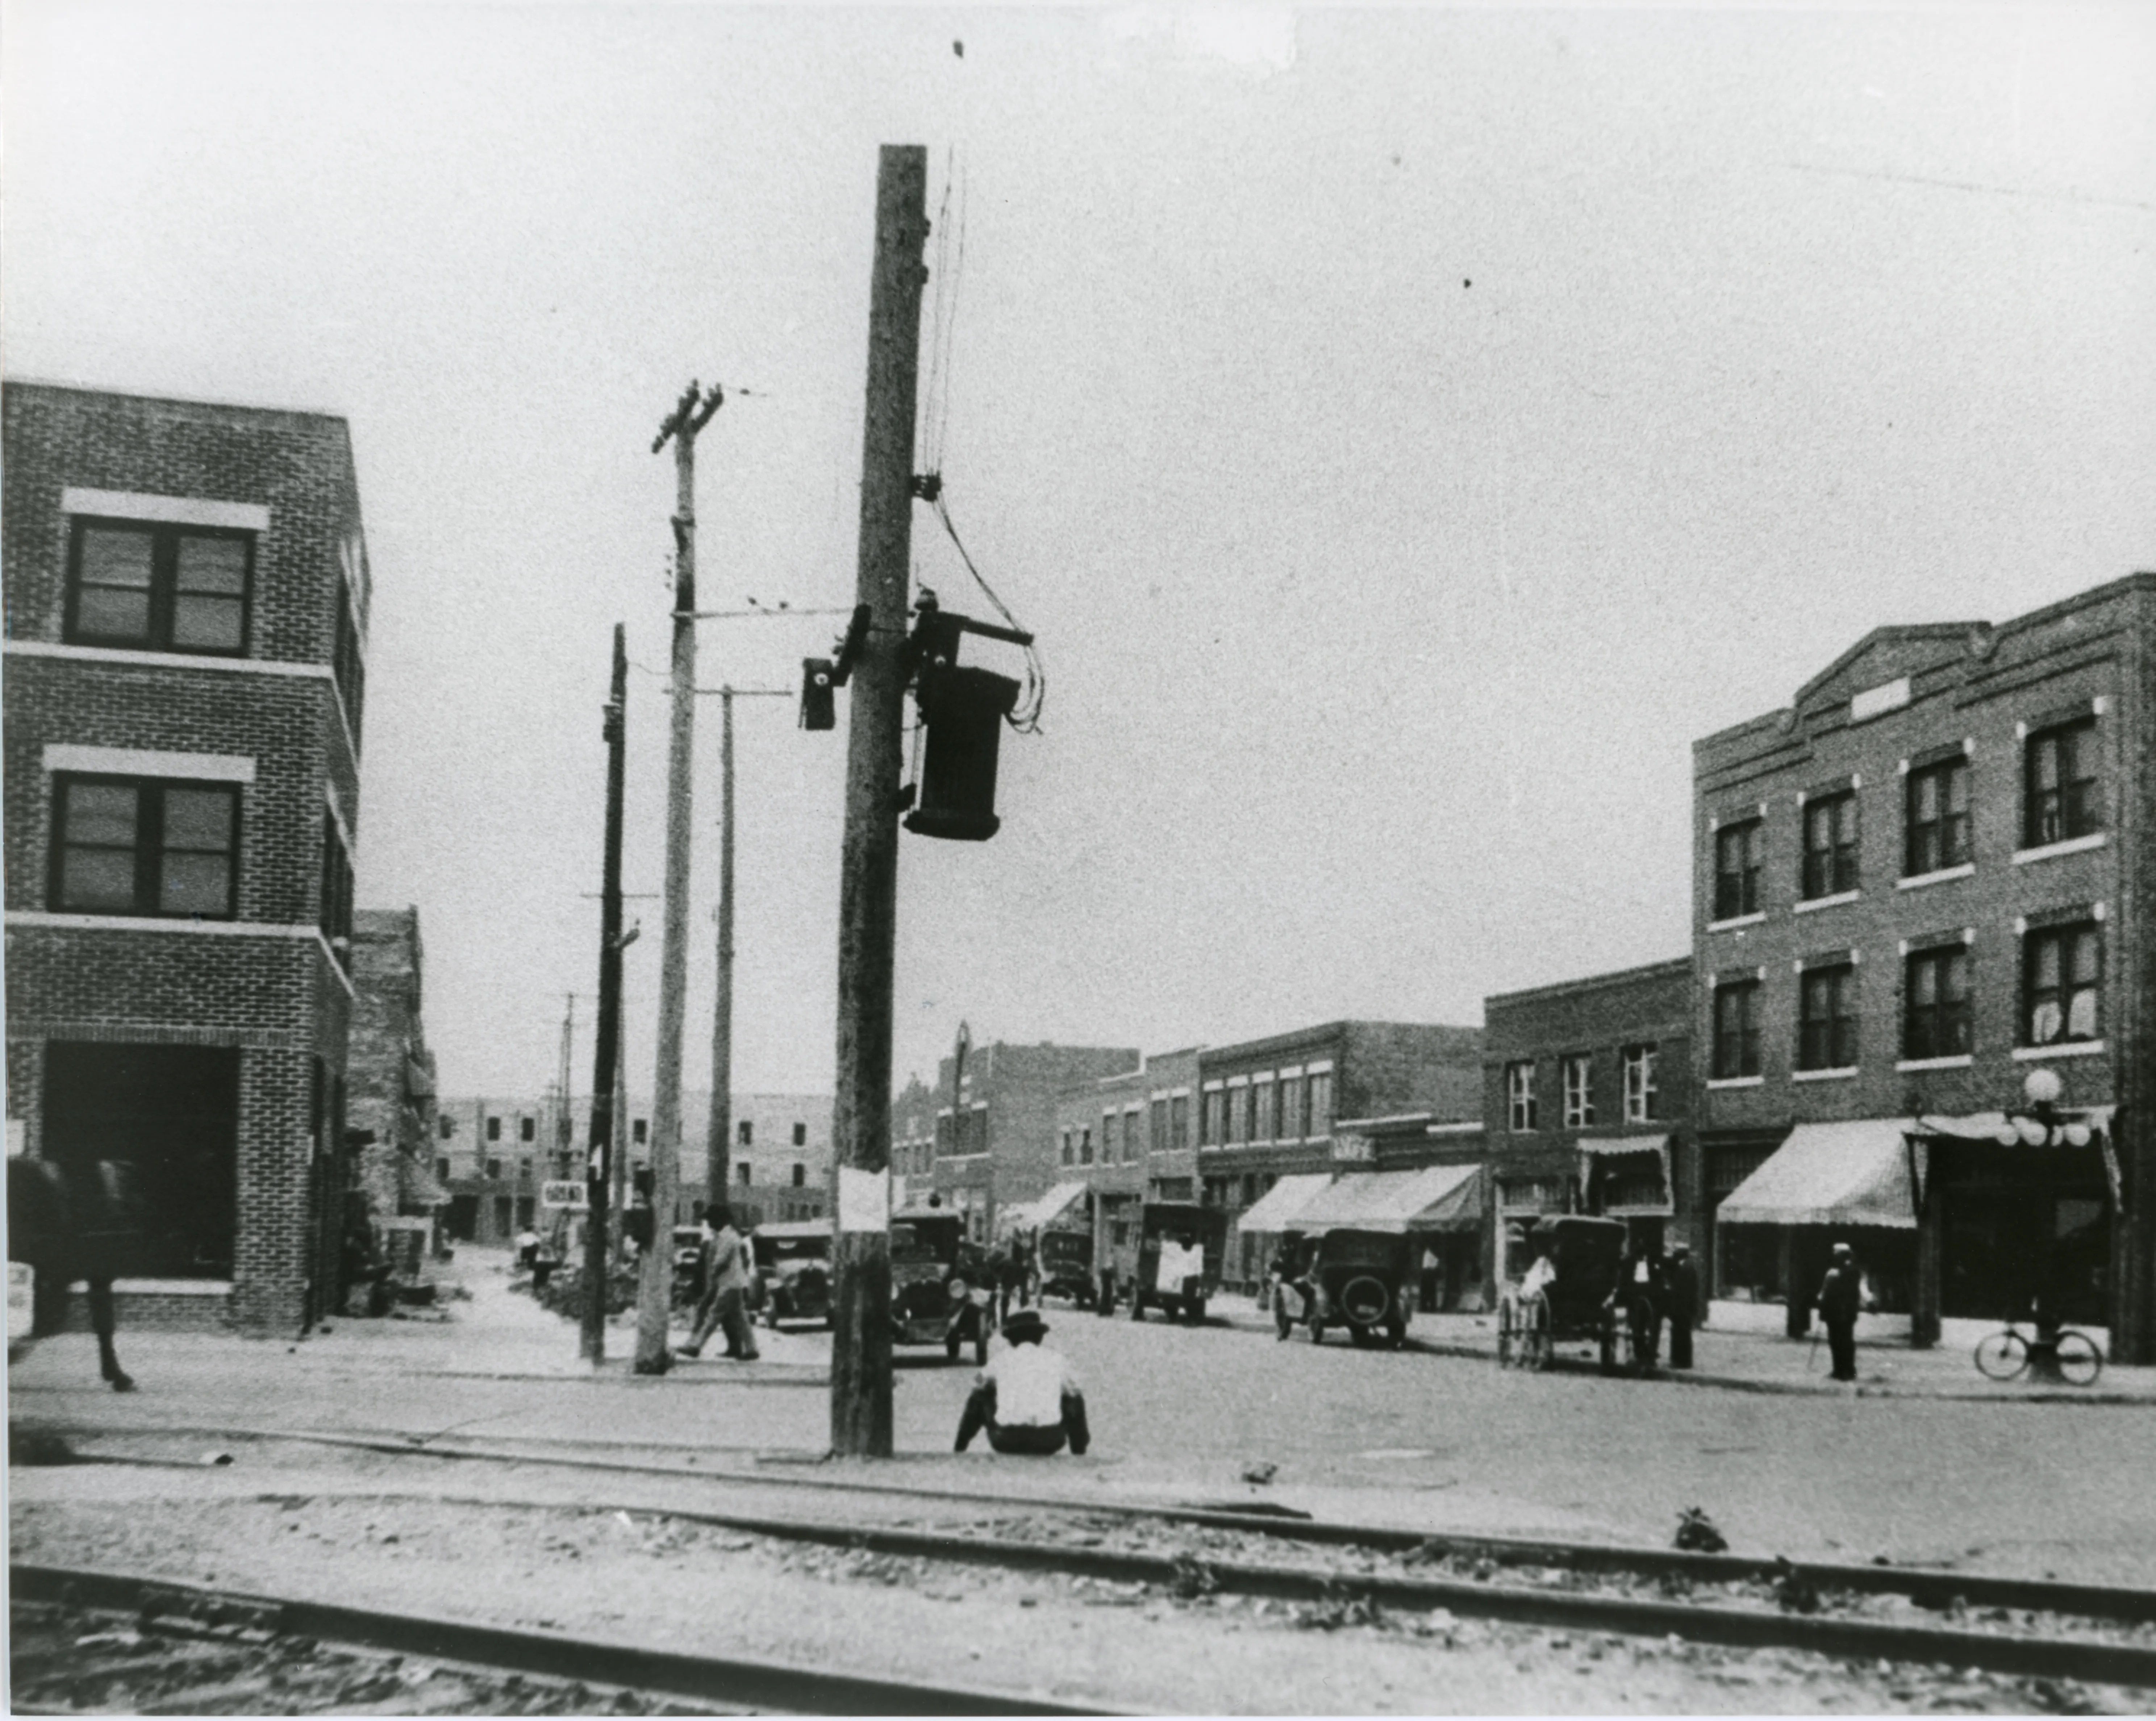 Greenwood Avenue in Tulsa after the reconstruction of the Greenwood District after the 1921 Tulsa Race Massacre. The three-story, brick Botkin Building is visible on the far right. It replaced a two-story brick building that stood before the massacre. The building on the far left is the reconstructed Williams Building completed in 1922.